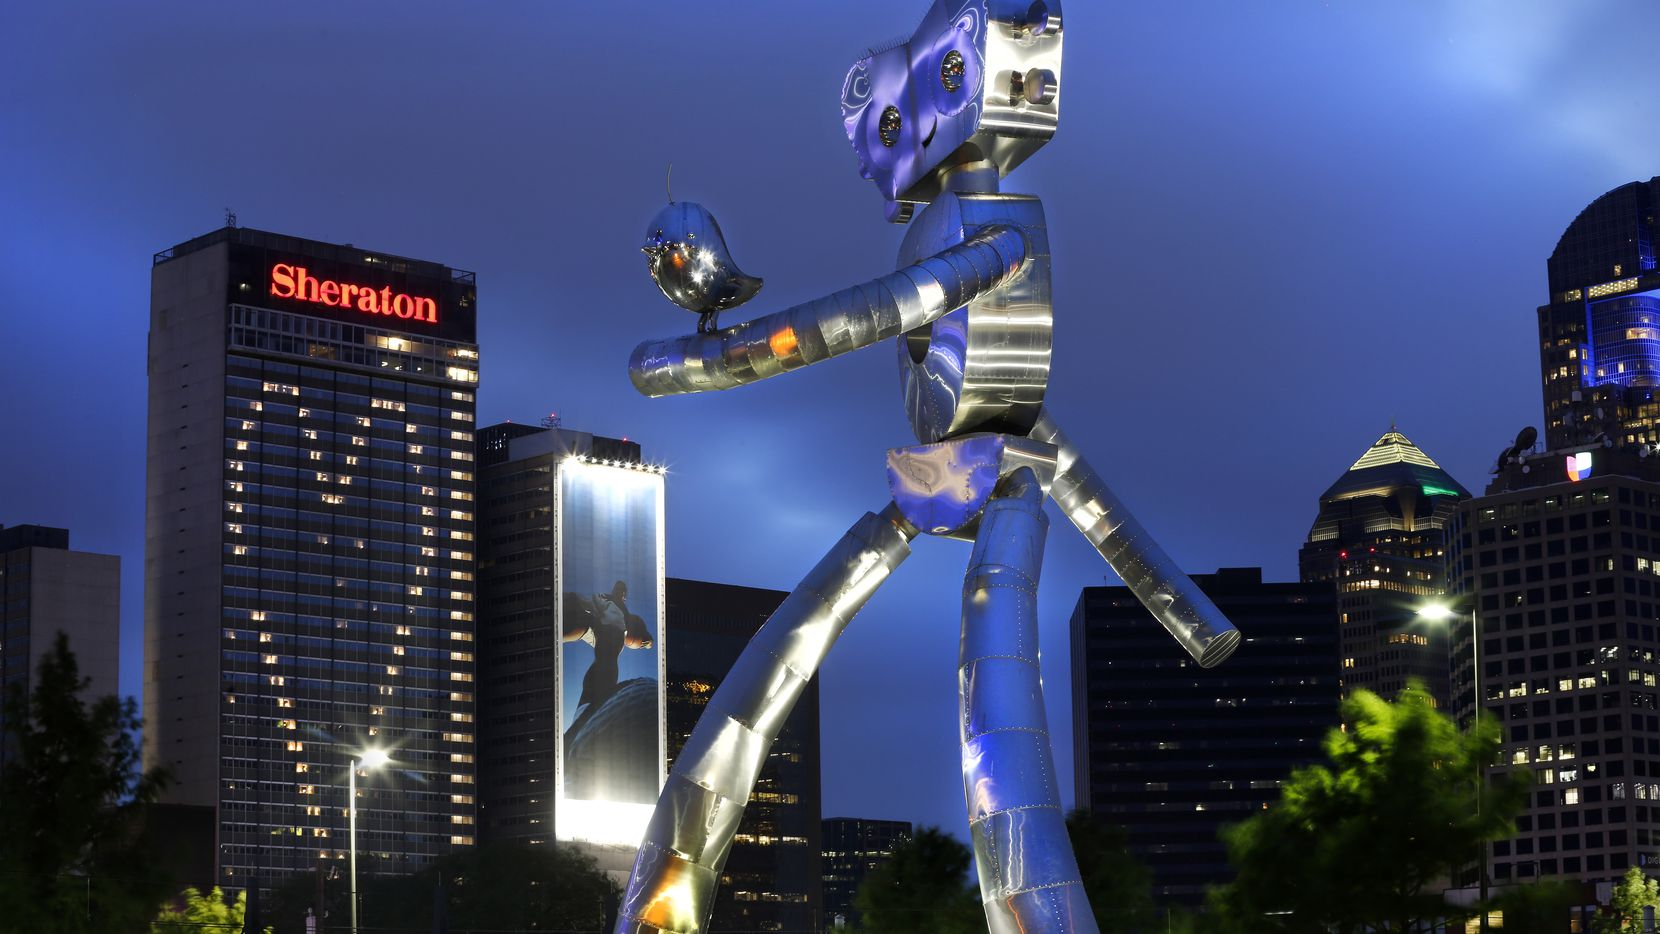 The Traveling Man reflective structural steel sculpture photographed Wednesday night in downtown Dallas. As North Texans prepare to navigate vacations, road trips and summer fun, we'll all have to pick our way carefully through the coronavirus health crisis.